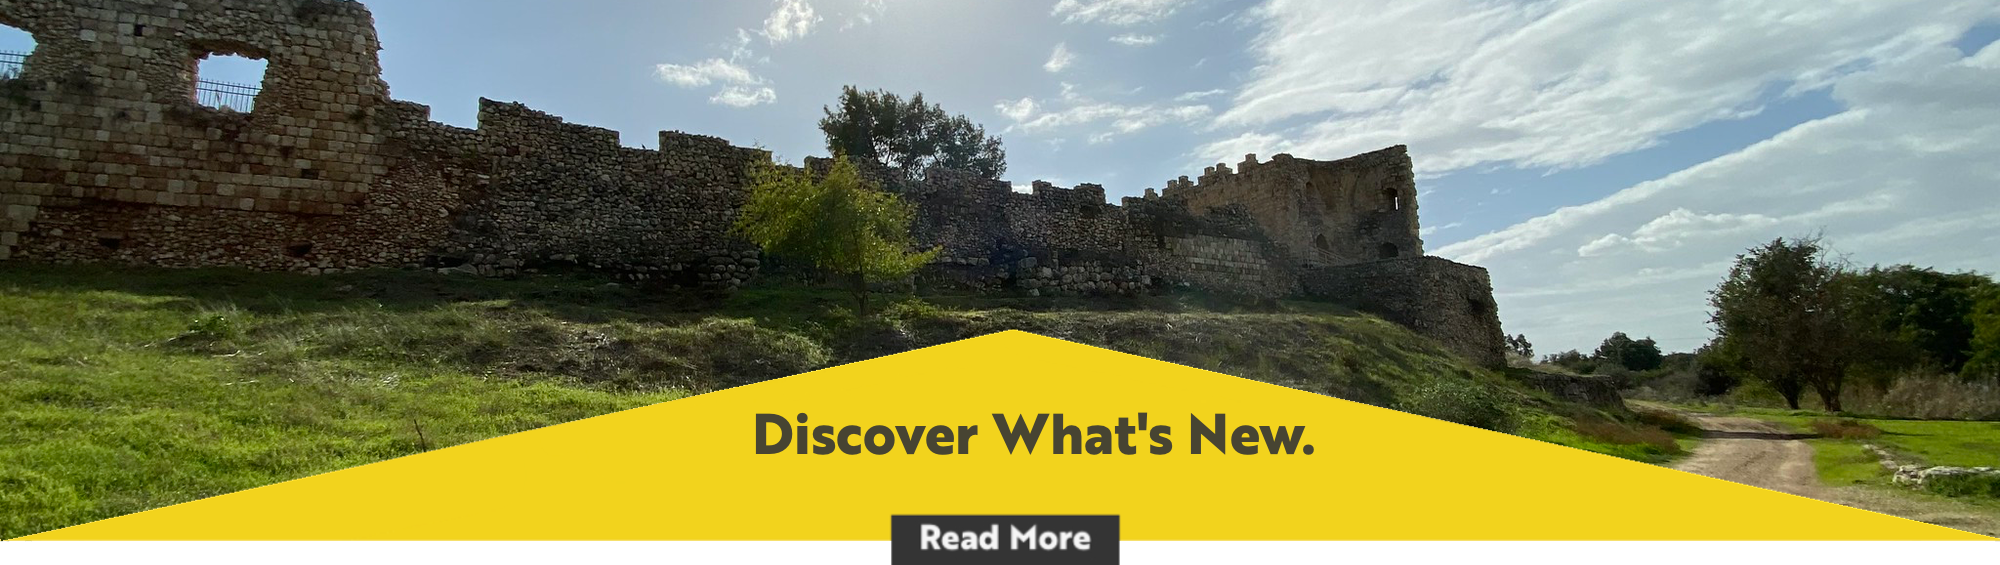 discover_whats_new